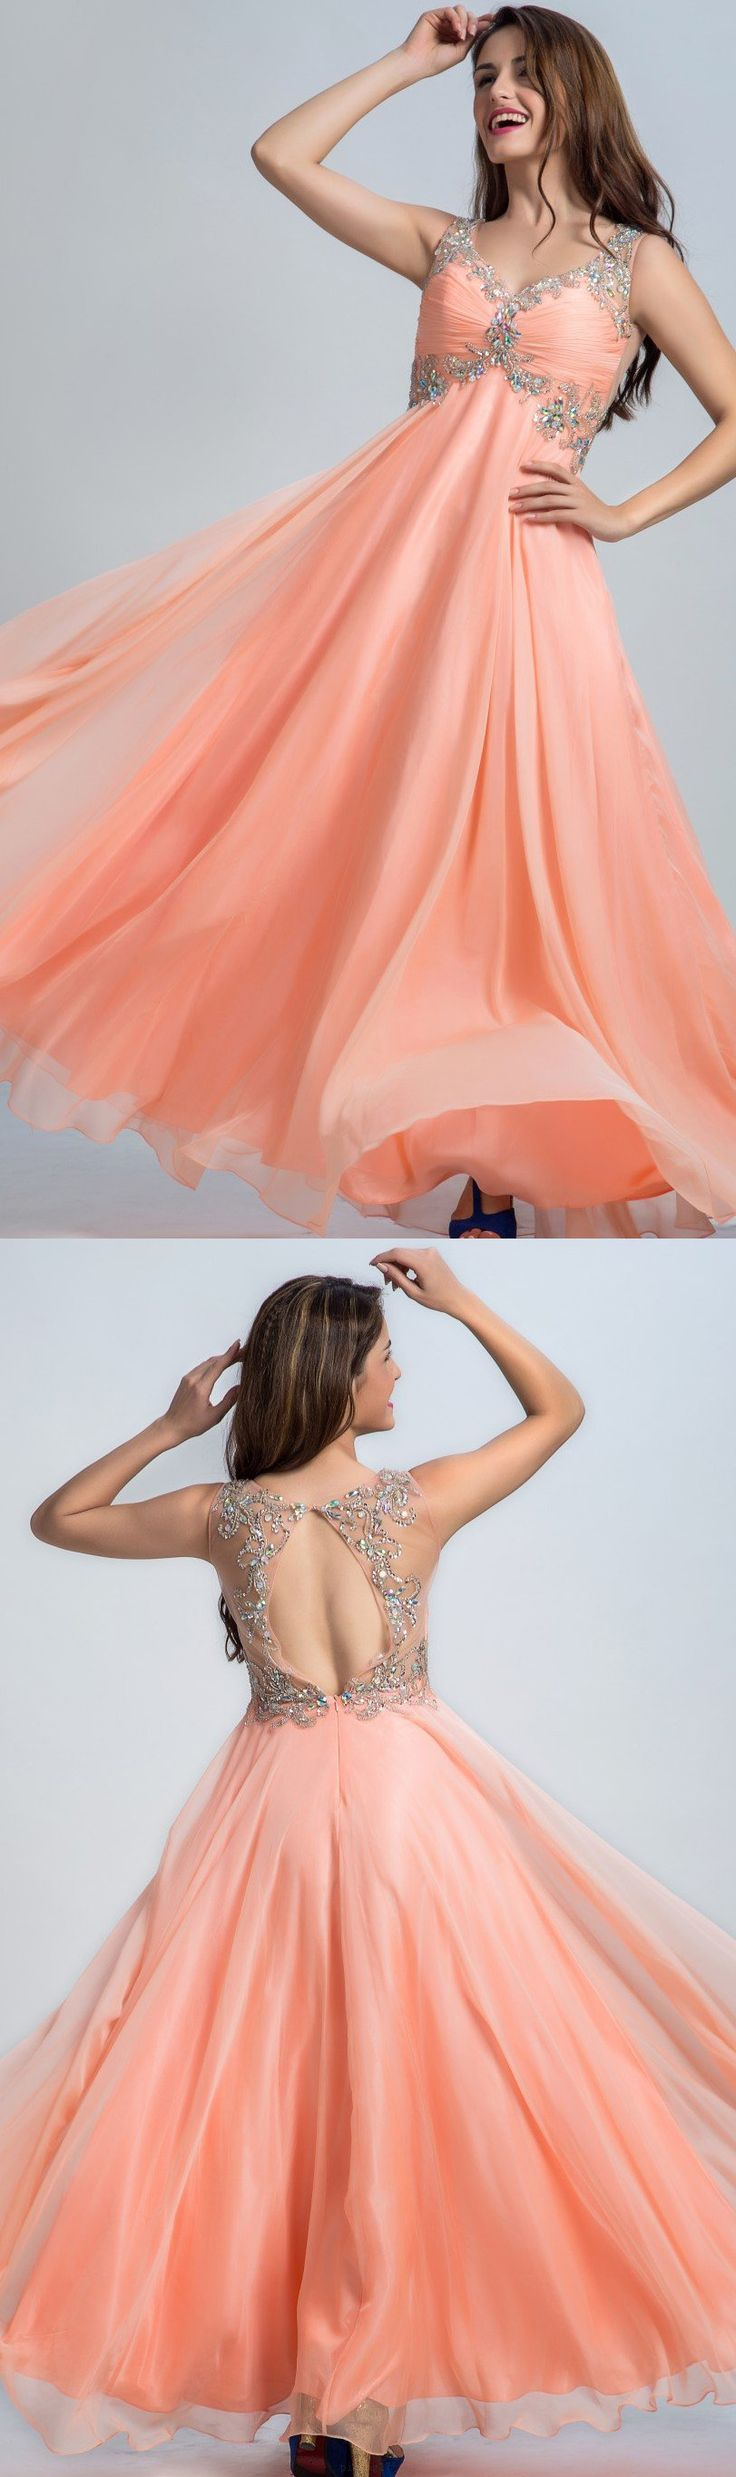 Discount Sleeveless Dresses Long Coral Evening Prom Dresses With Rhinestone Open-back Floor-length Distinct Evening Dresses